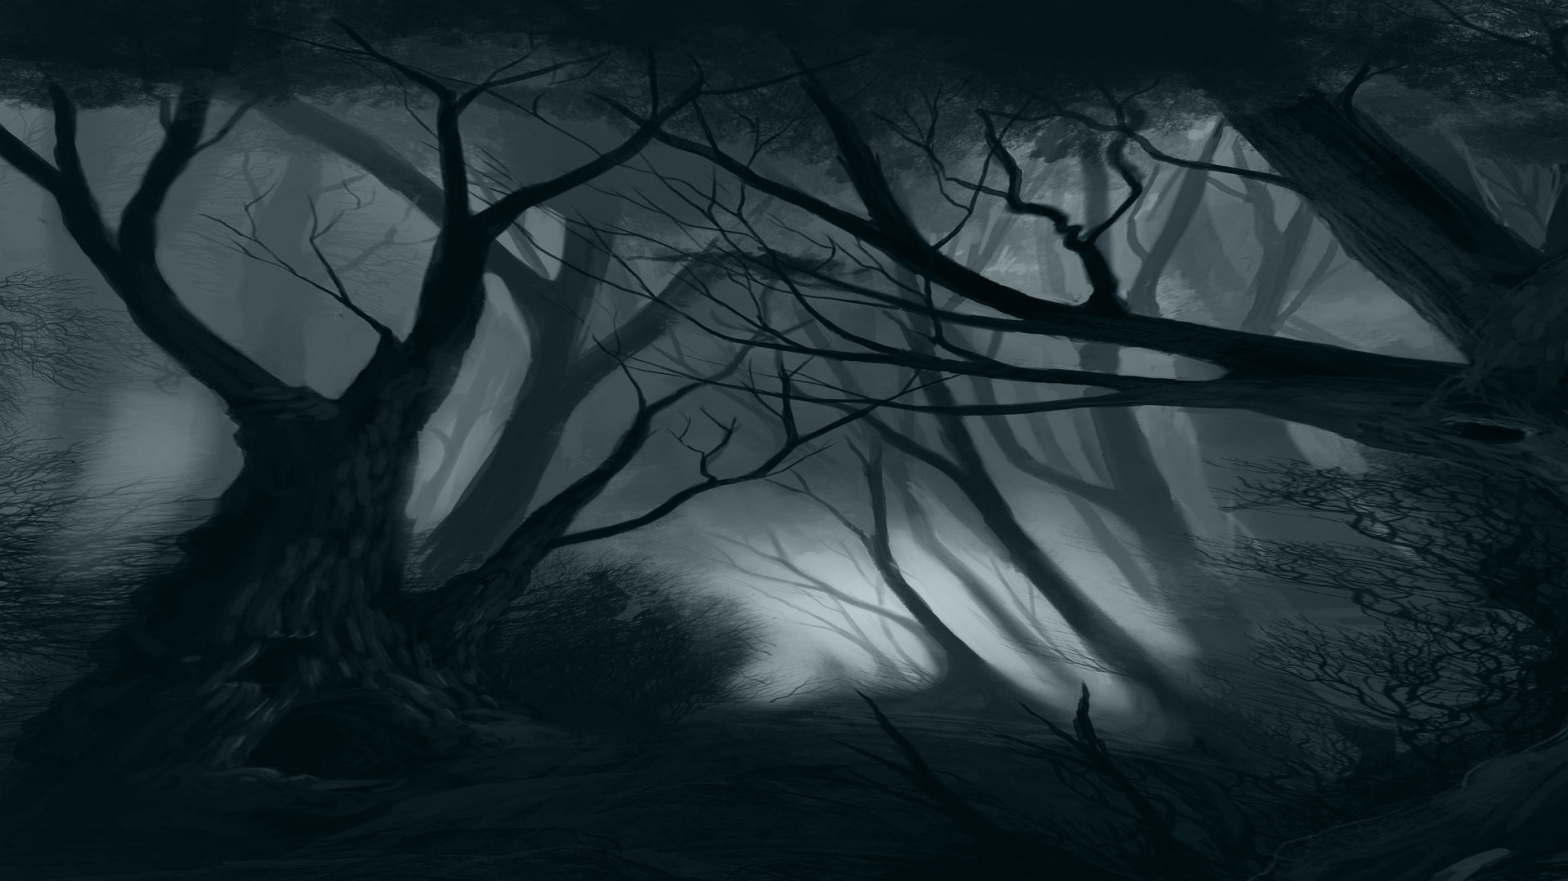 Poetry Dark forest, shadowed and misted